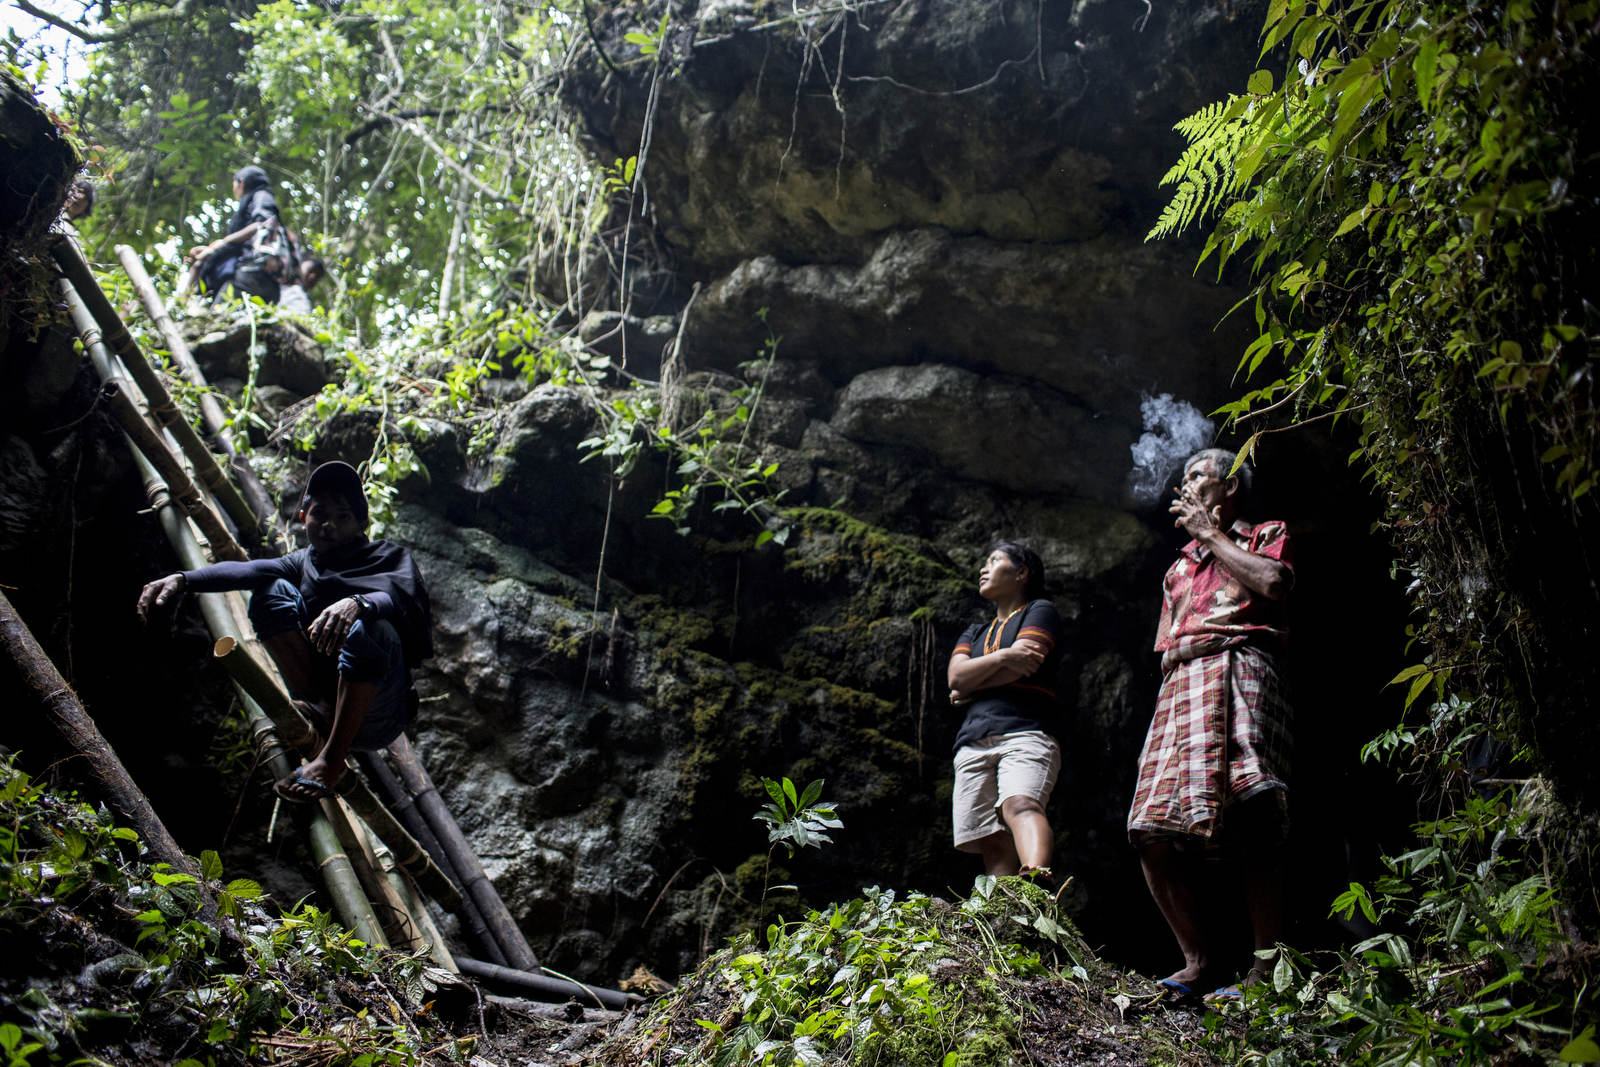 A man smokes a cigarette after a cave burial in Toraja, a remote part of Sulawesi. There are no traditional graveyards in the region, and instead, people are buried in caves, in carved out caverns in the faces of rocks, or in mini mausoleums in rice paddy fields, so that the deceased is closer to nature and can enter the afterlife.